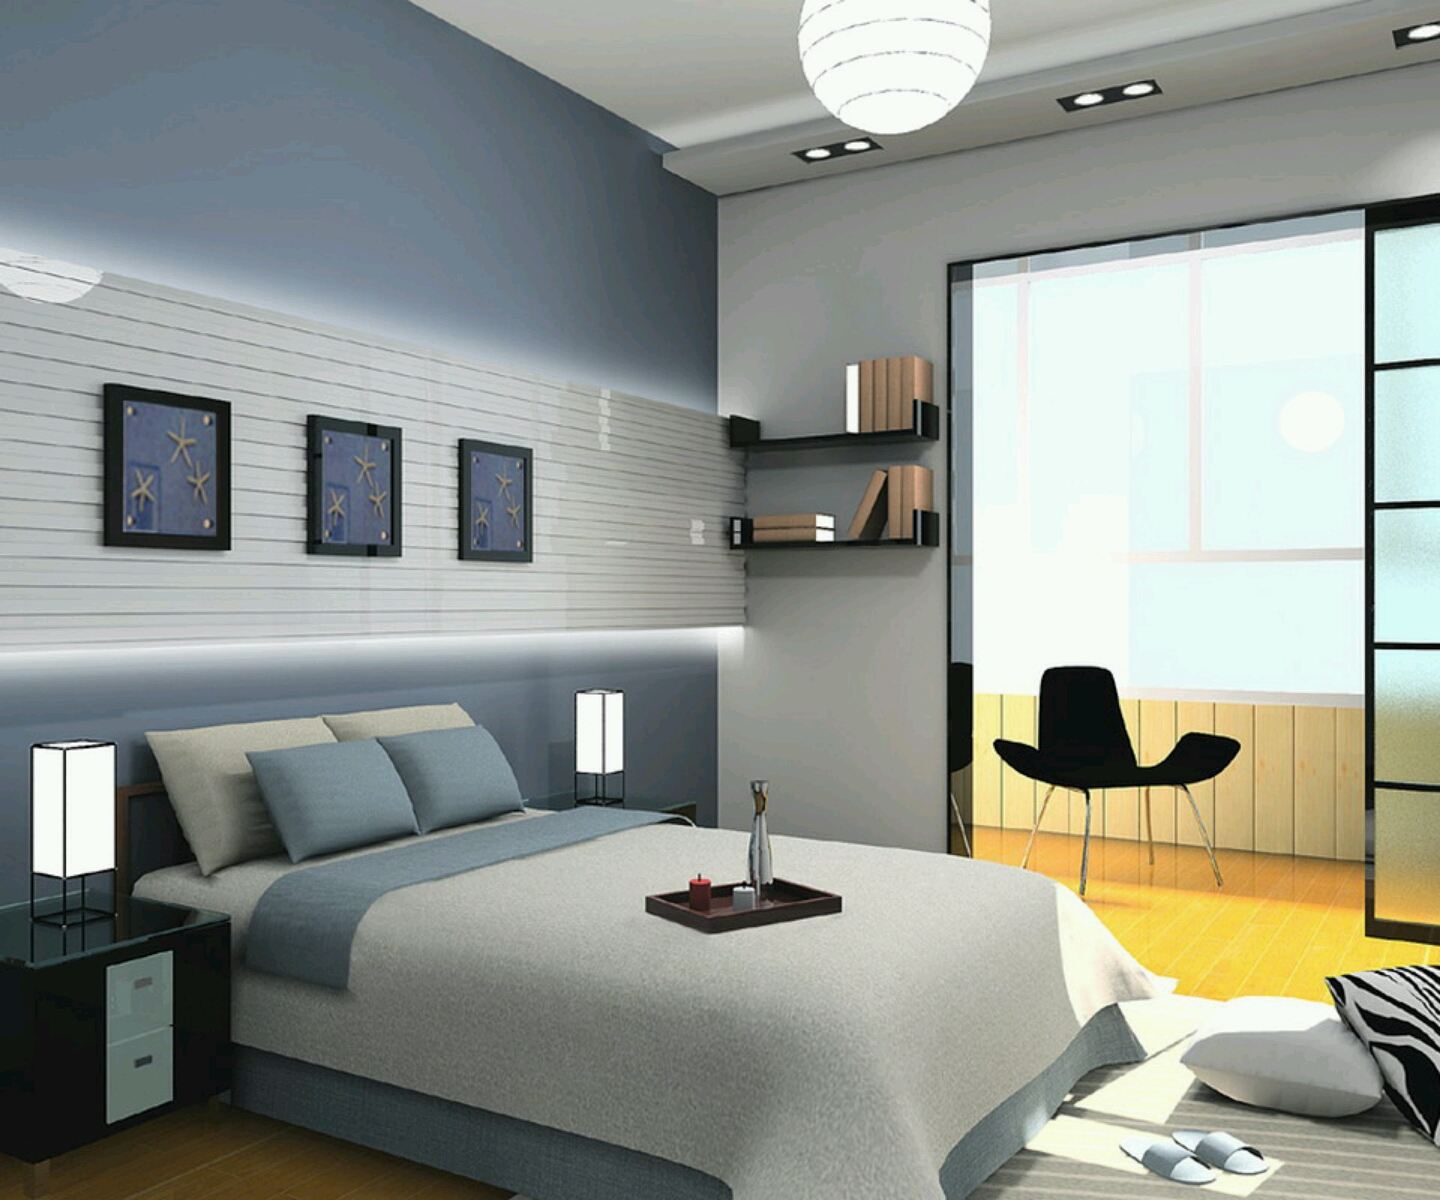 Bedrooms Designs Pleasing Of Modern Bedroom Design Ideas Photos